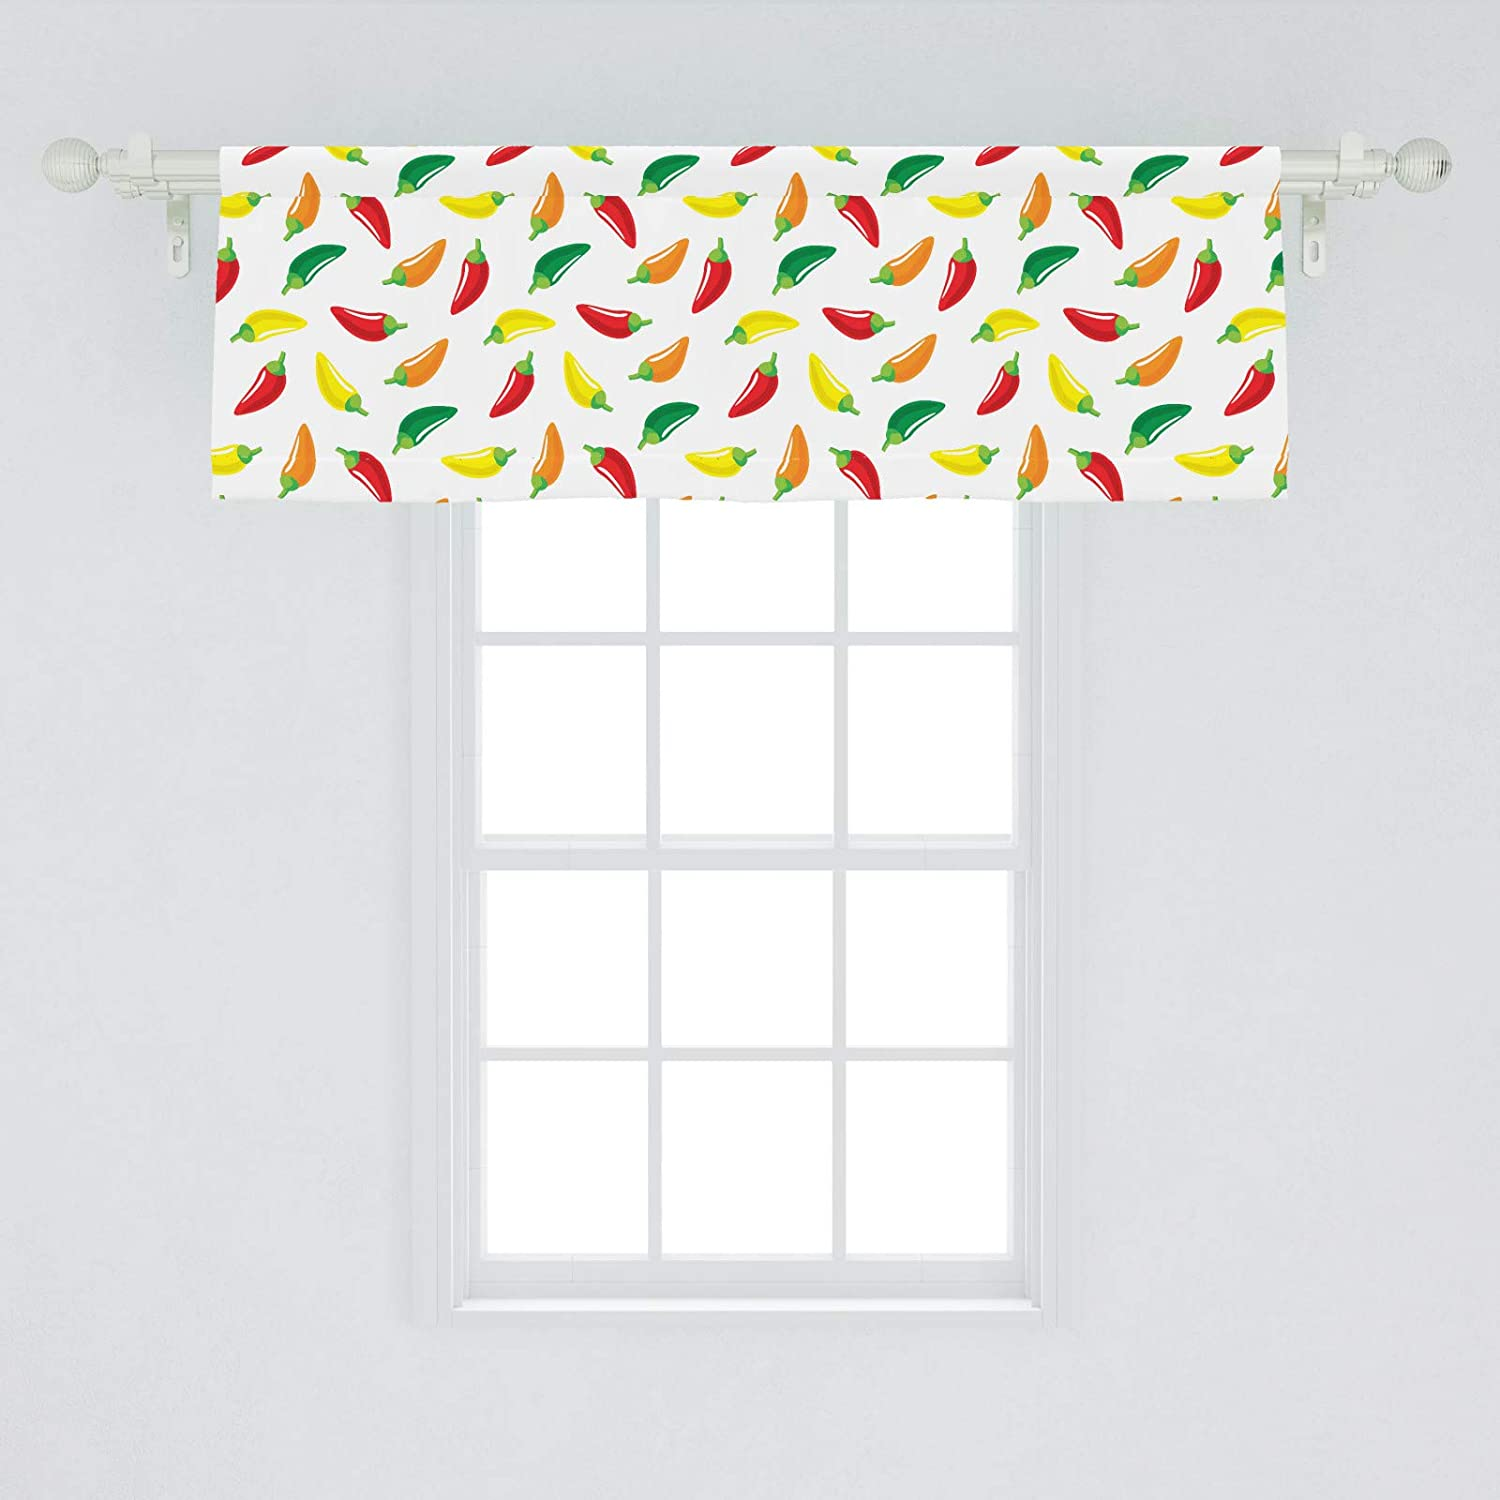 Ambesonne Peppers Window Valance Chili Pepper Pattern With Colorful Digital Vegetable Art Design Composition Vegan Curtain Valance For Kitchen Bedroom Decor With Rod Pocket 54 X 18 Multicolor Amazon Ca Home Kitchen